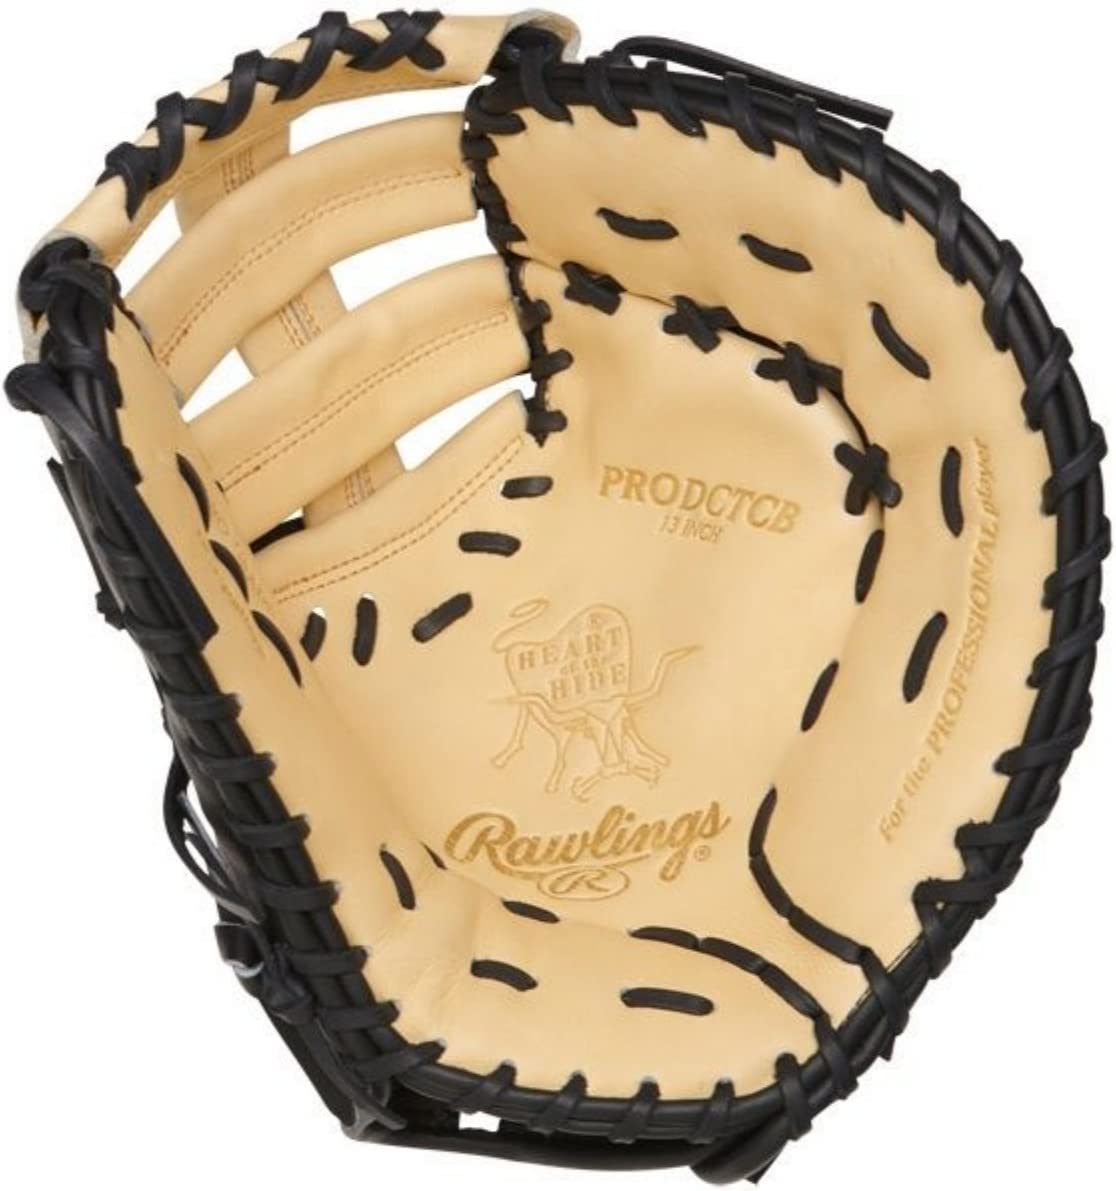 13 Rawlings Heart of The Hide PRODCTCB First Base Mitt